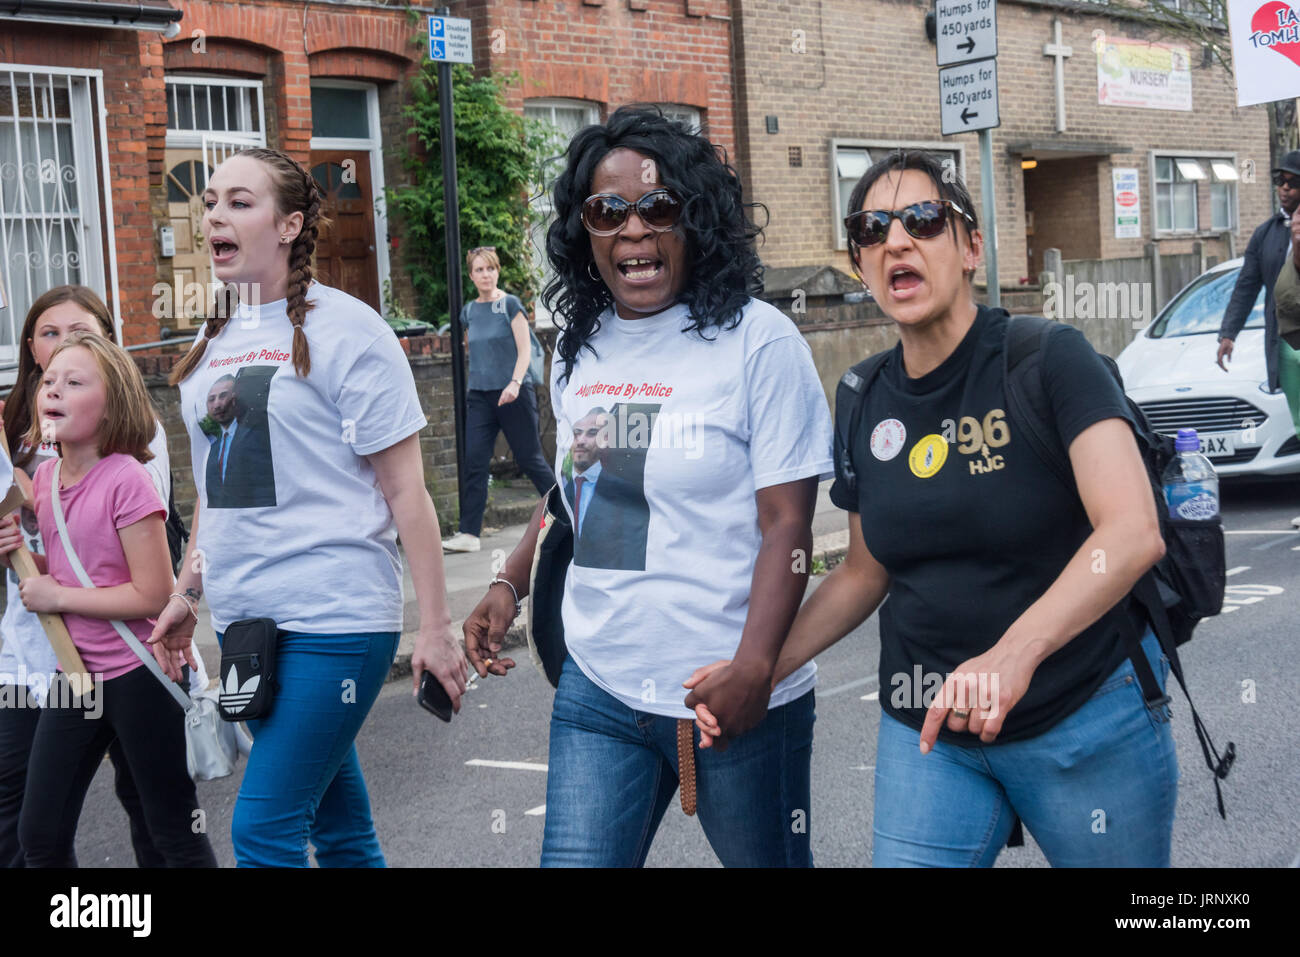 London, UK. 4th Aug, 2017. London, UK. 4th August 2017. Becky Shah of the Hillsborough Justice Campaign and Jermaine Baker's mother march hand in hand from Broadwater Farm to a rally at Tottenham Police Station remembering the death of Mark Duggan on the sixth anniversary of his killing by police, and also the police killing of other members of the Tottenham community - Cynthia Jarrett, Joy Gardner, Roger Sylvester, Mark Duggan and Jermaine Baker and the recent murders of Rashan Charles, Darren Cumberbatch and Edson Da Costa. Led by Stafford Scott, there was poetry, a minute of silence and - Stock Image